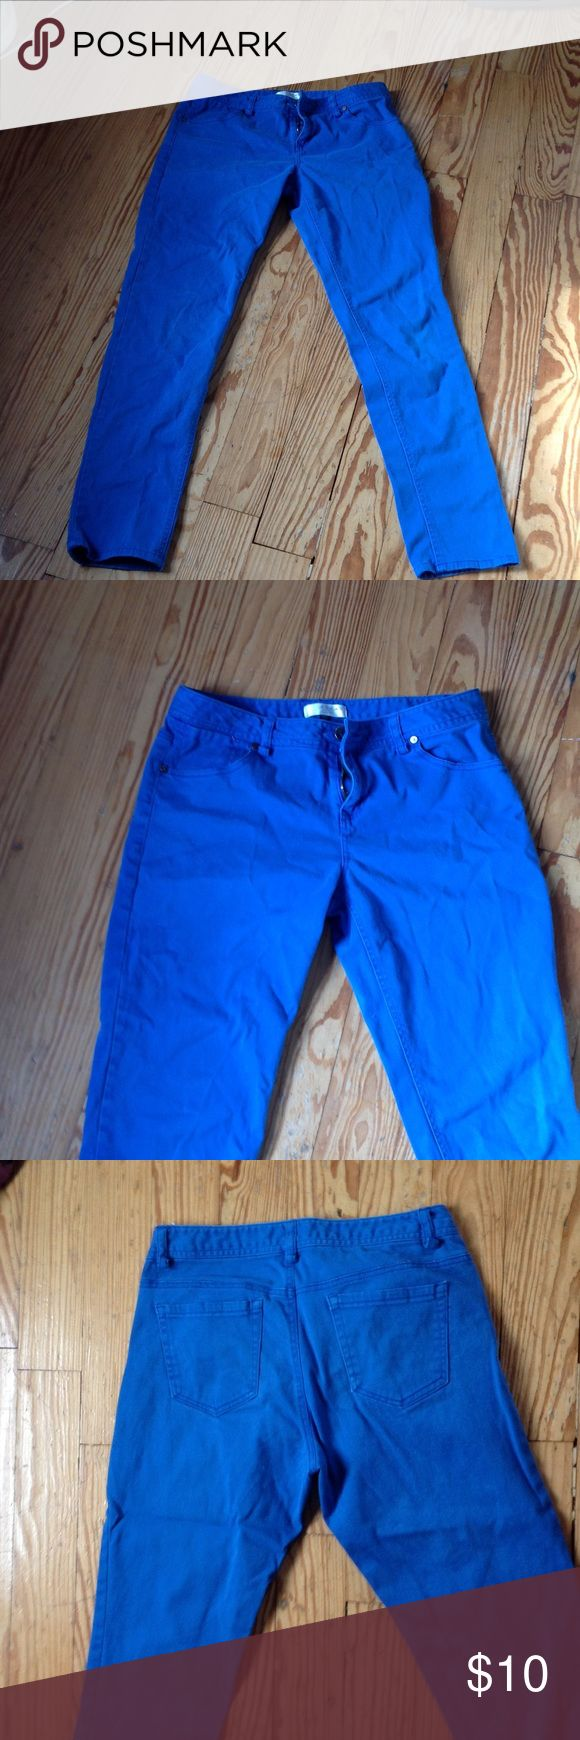 "Royal blue pants Great condition! Inseam is 29"". Kenar Jeans Straight Leg"